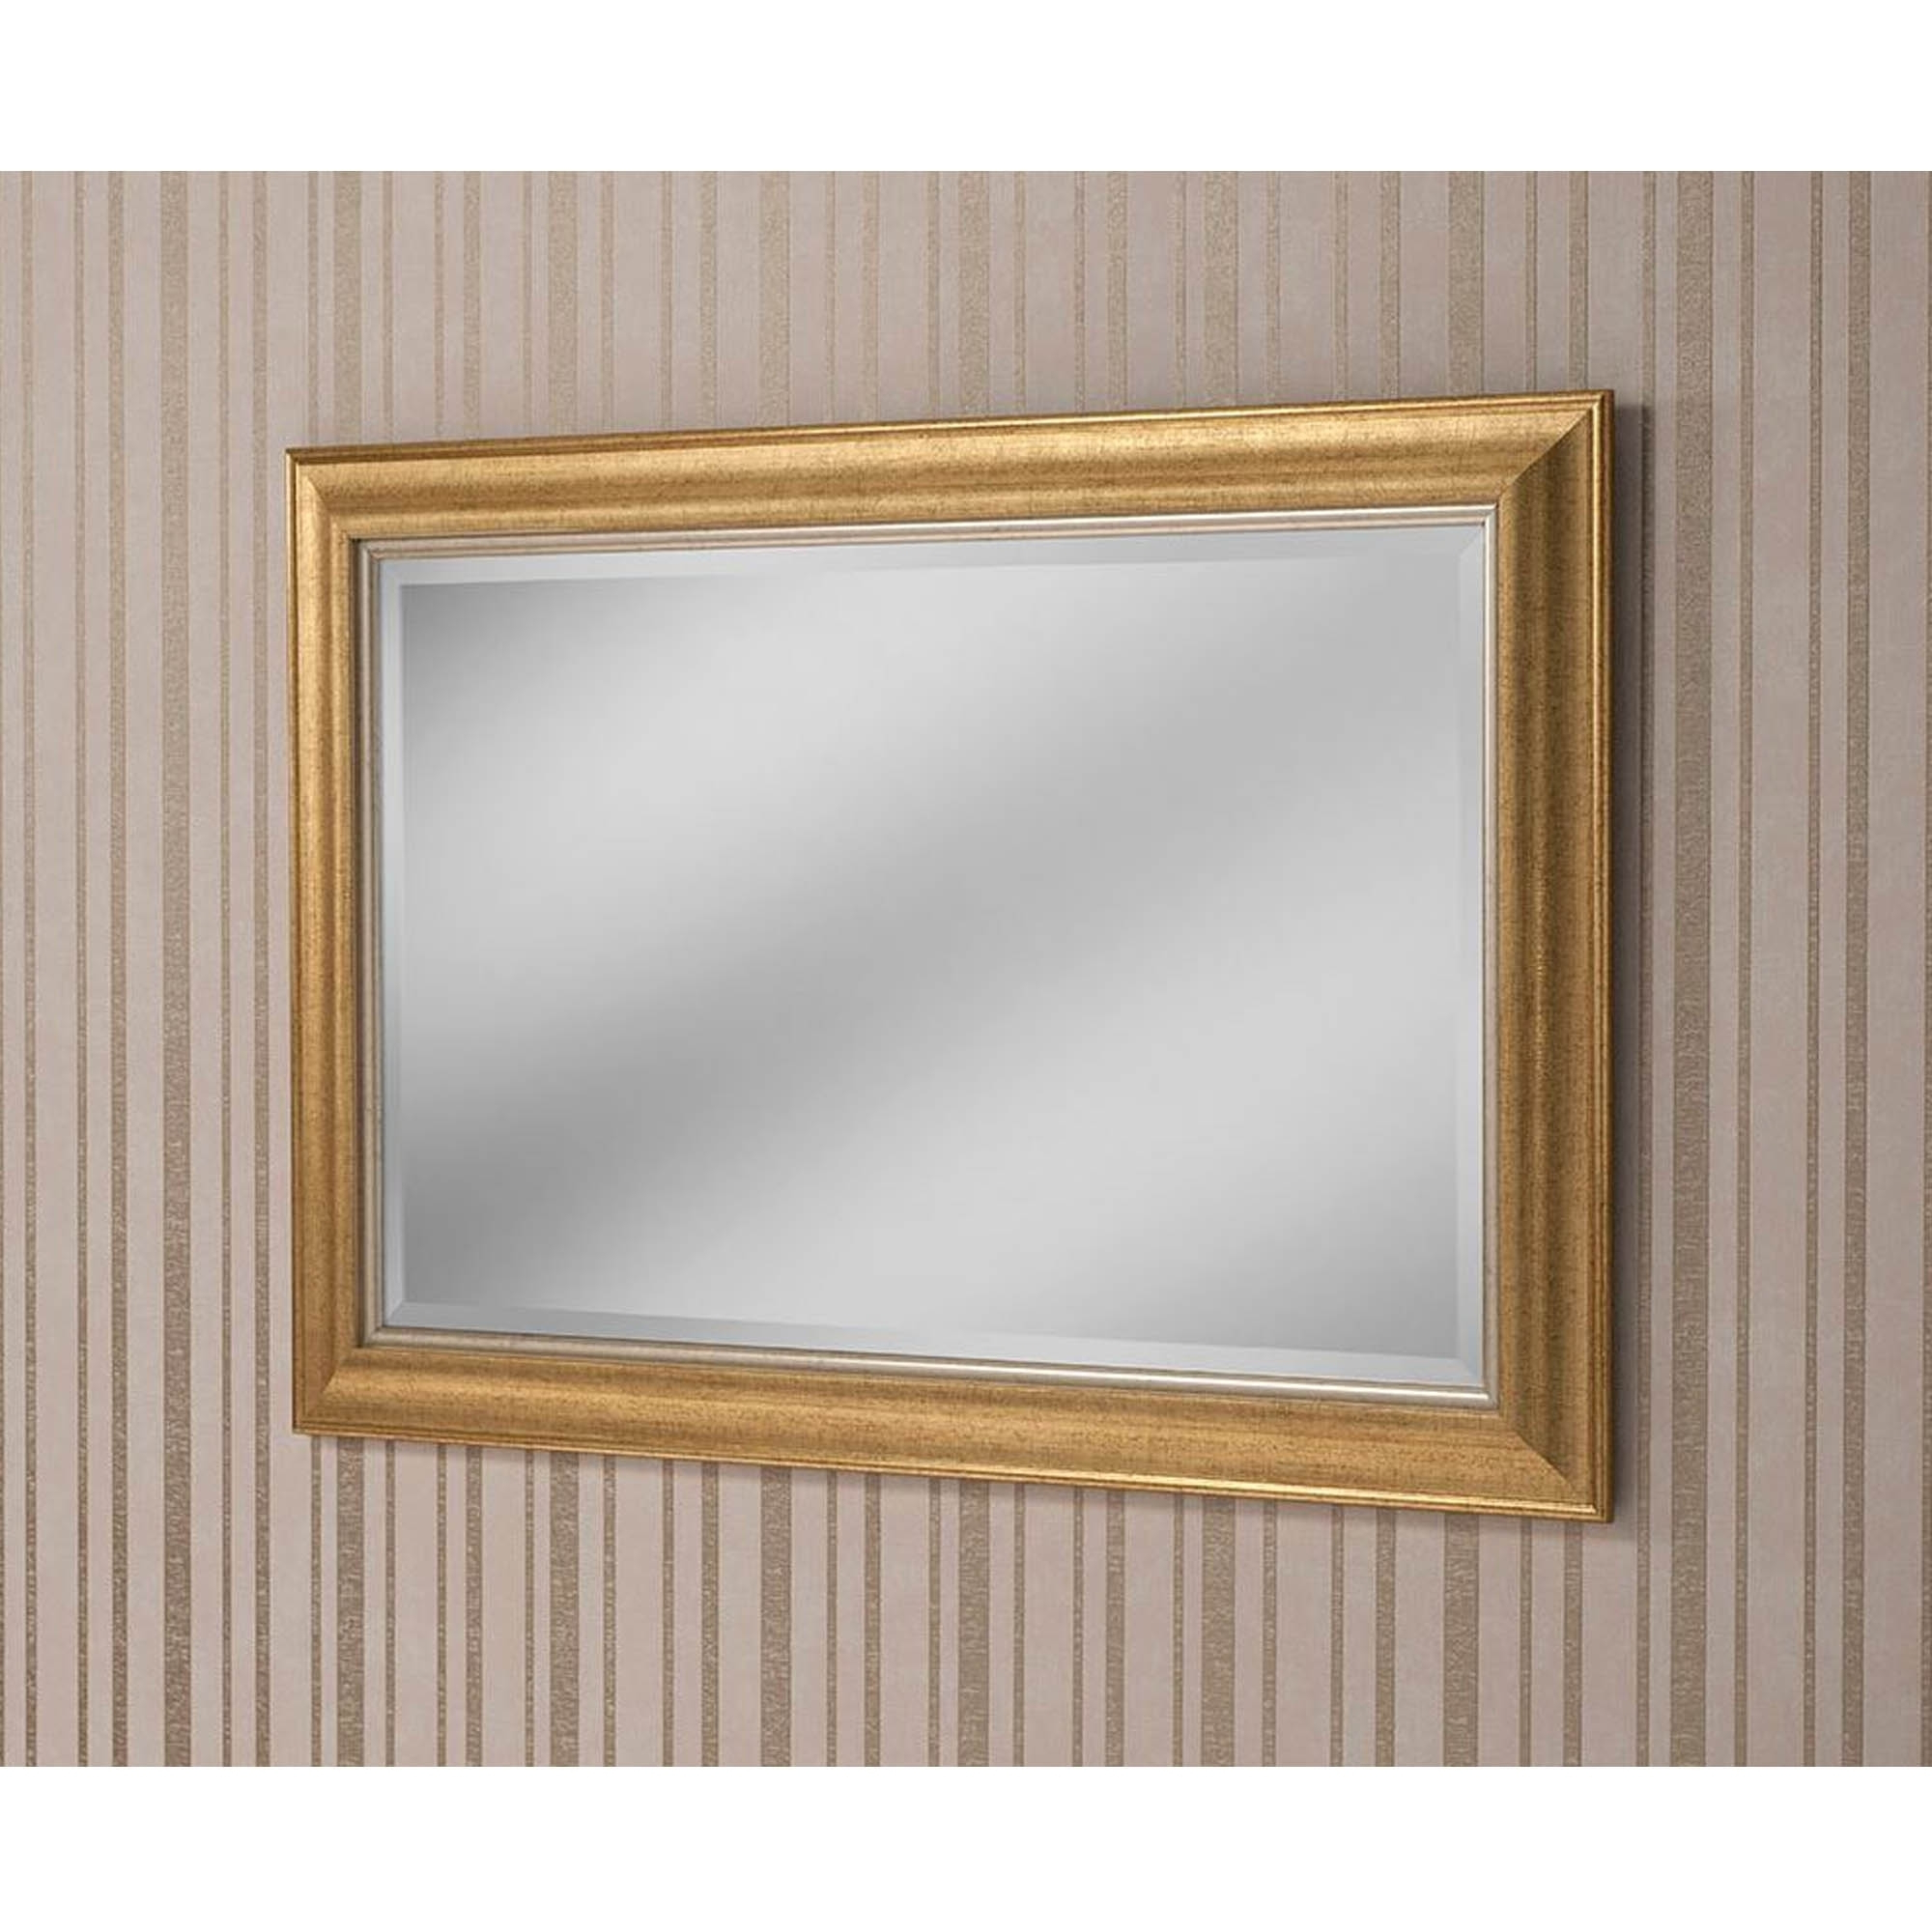 Rectangle Wall Mirrors In Best And Newest Decorative Gold Rectangular Wall Mirror (Gallery 8 of 20)